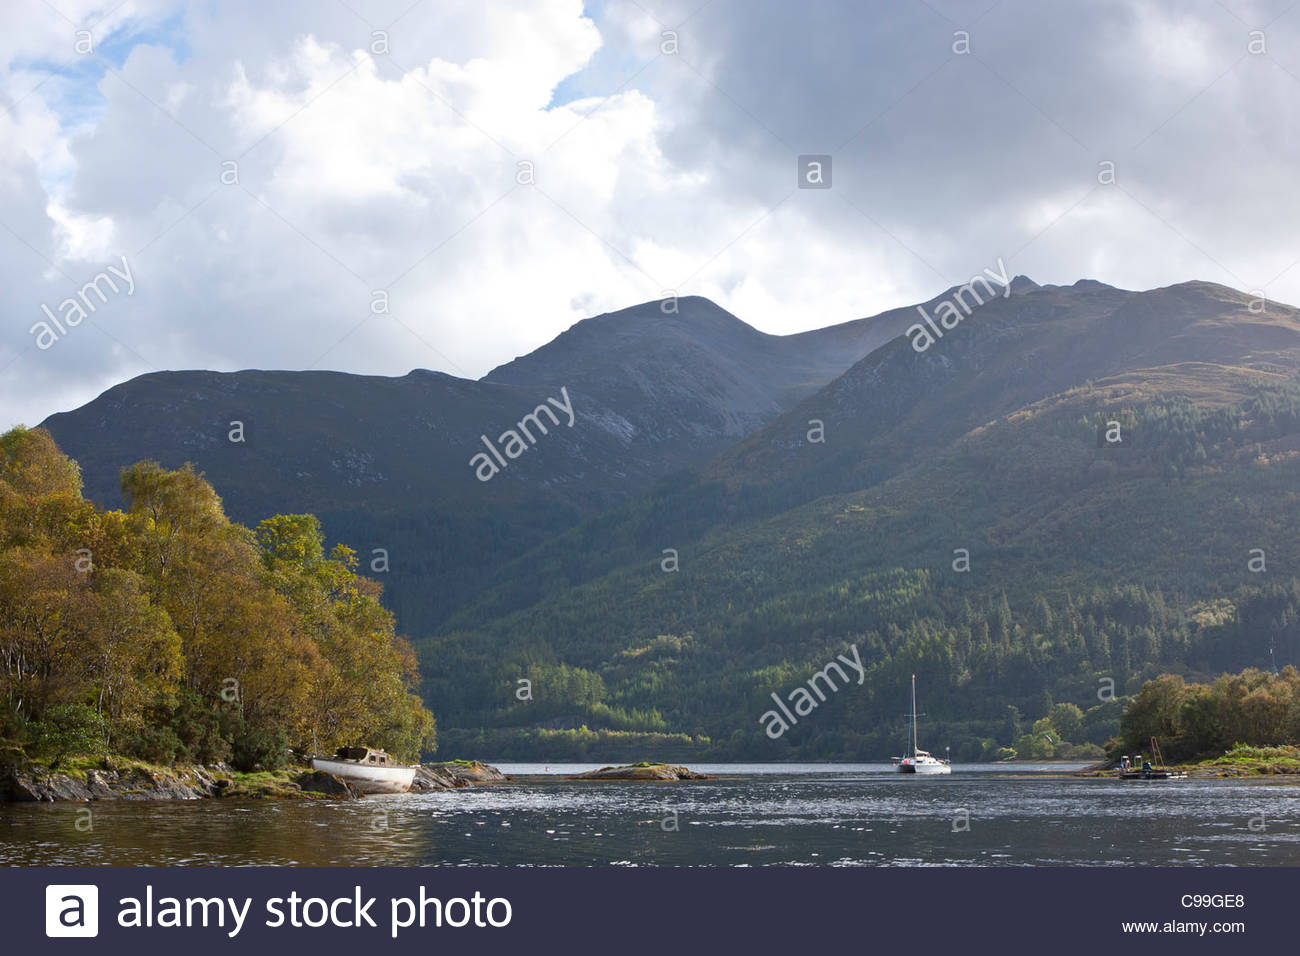 Yachts at rest, Loch Leven, Argyll, Scotland - Stock Image